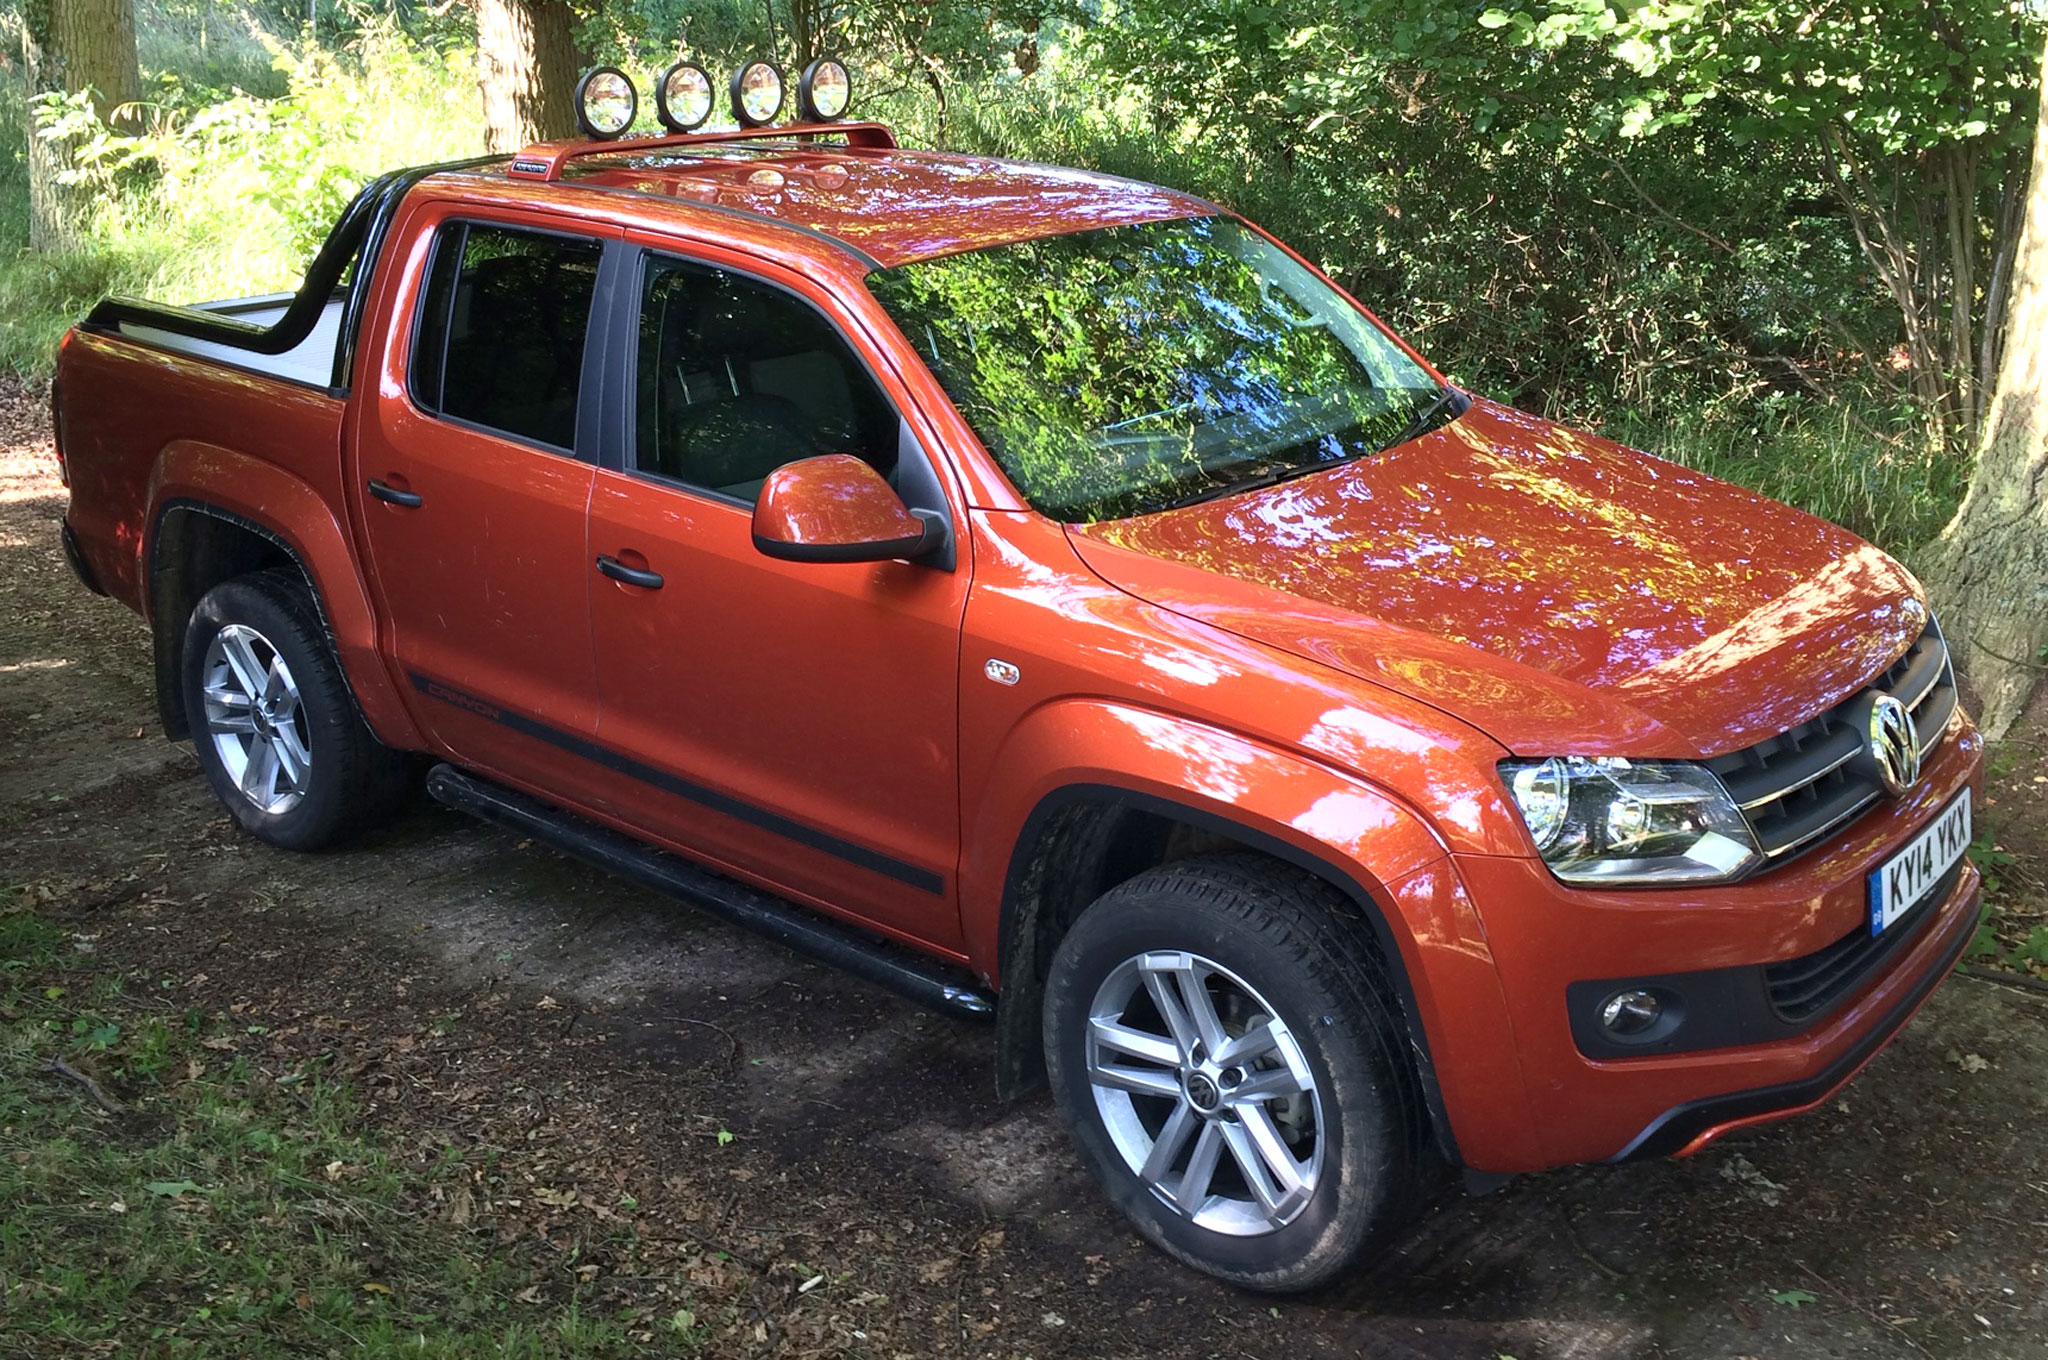 2014 volkswagen amarok canyon reviewLikewise V6 Volkswagen Amarok 2017 As Well Vw Headlight Switch Wiring #9